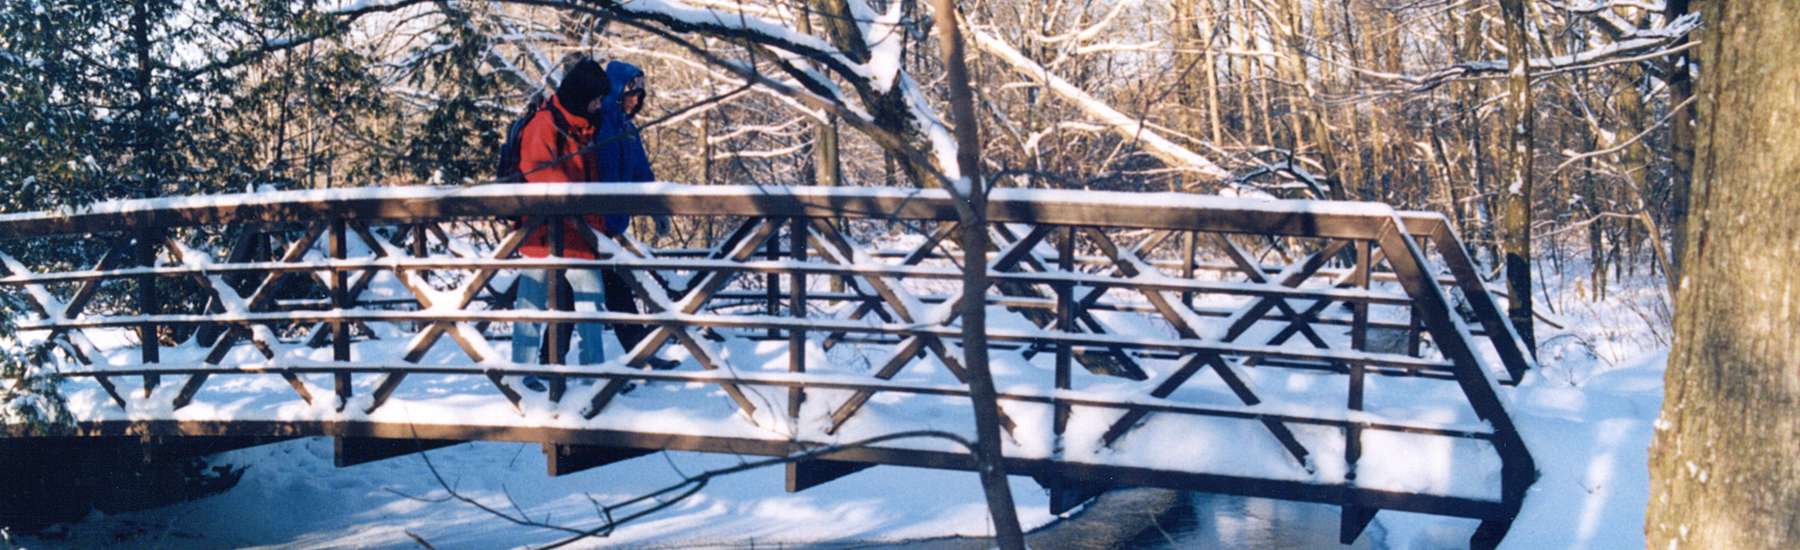 Two people cross a snowy bridge on foot in Waterloo Park